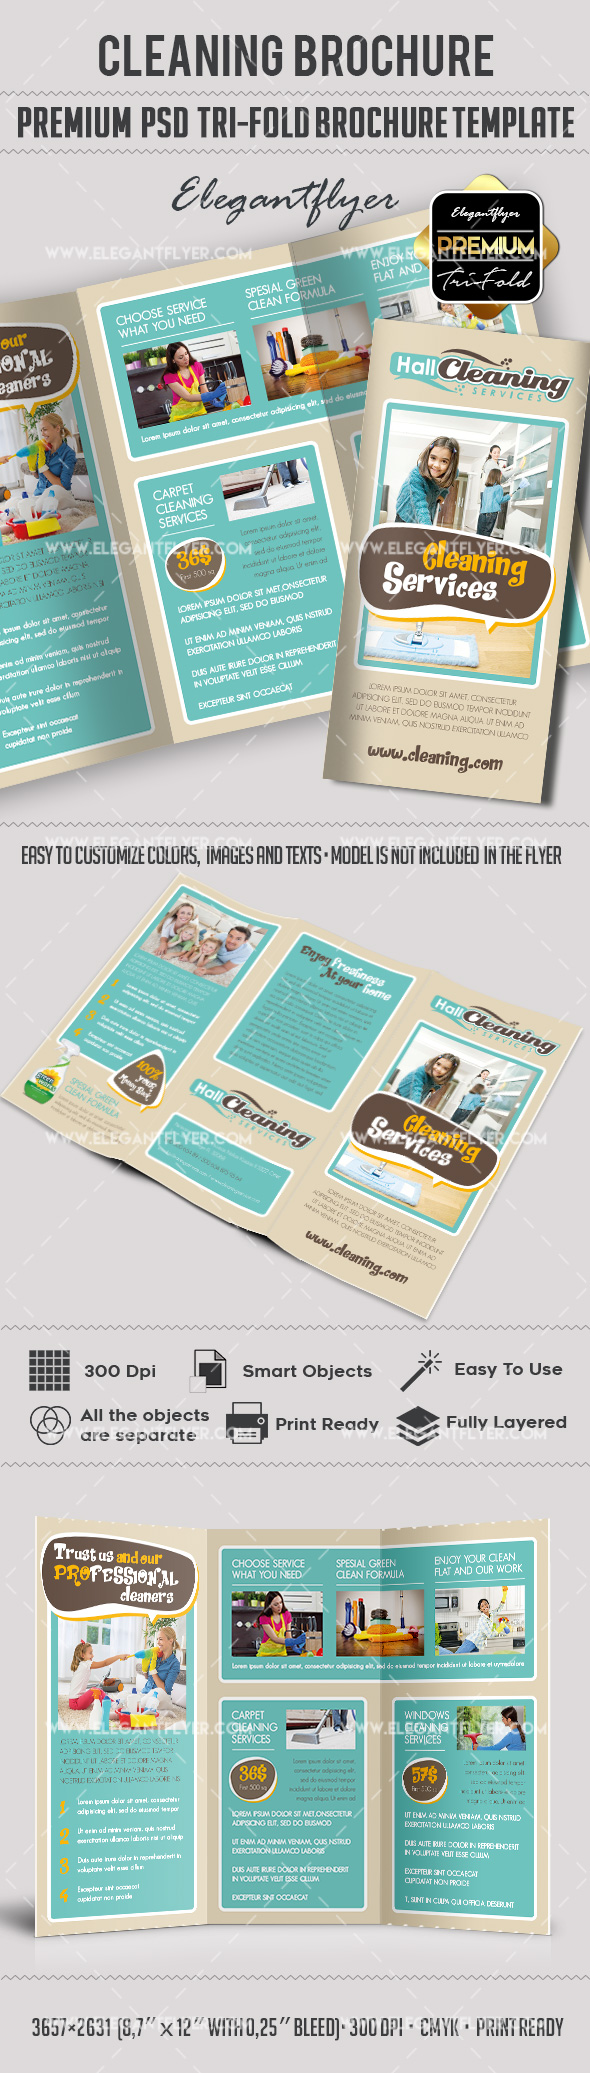 tri fold brochure template pages - psd brochure for cleaning services by elegantflyer